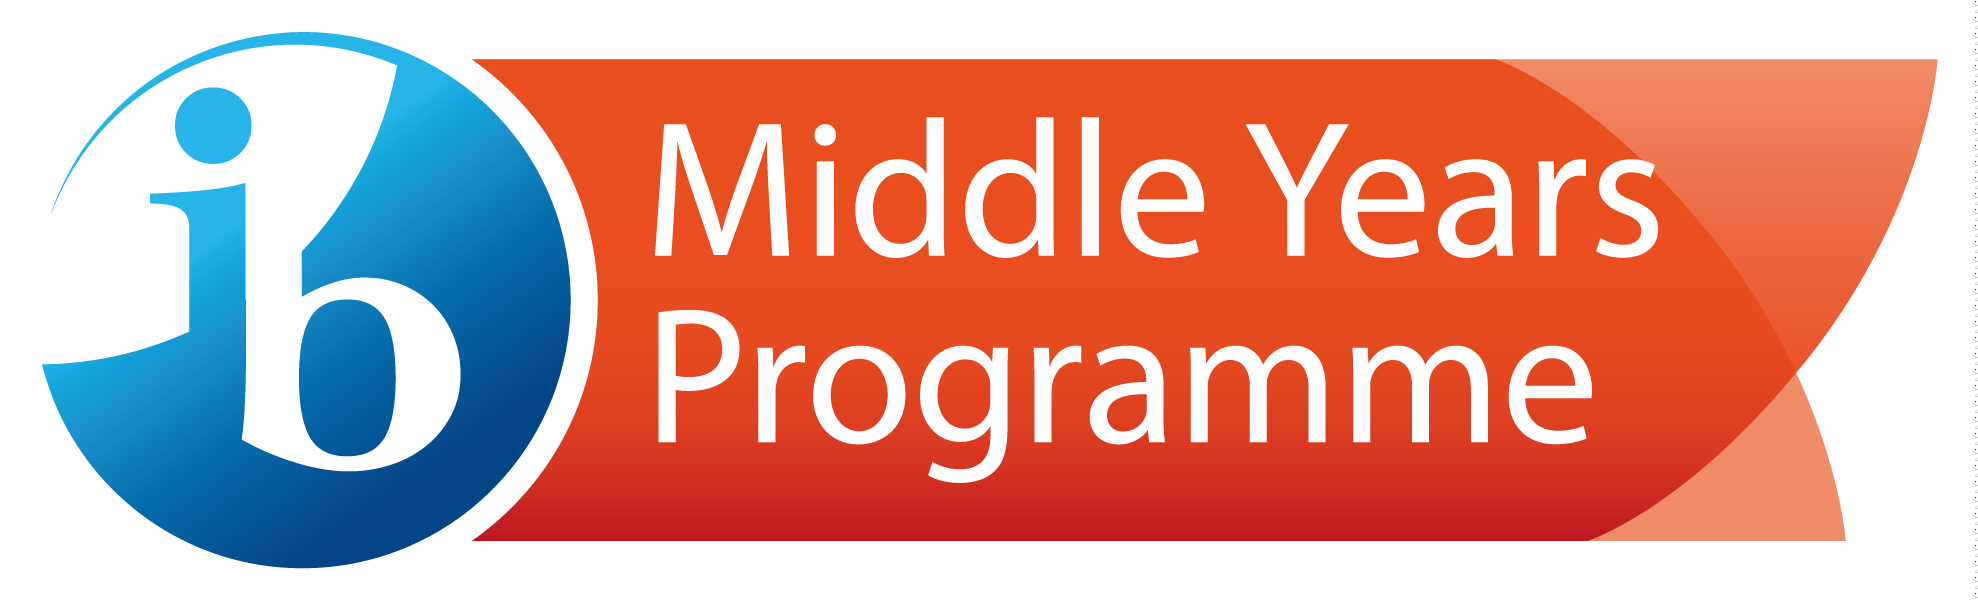 IB logo with middle years programme text